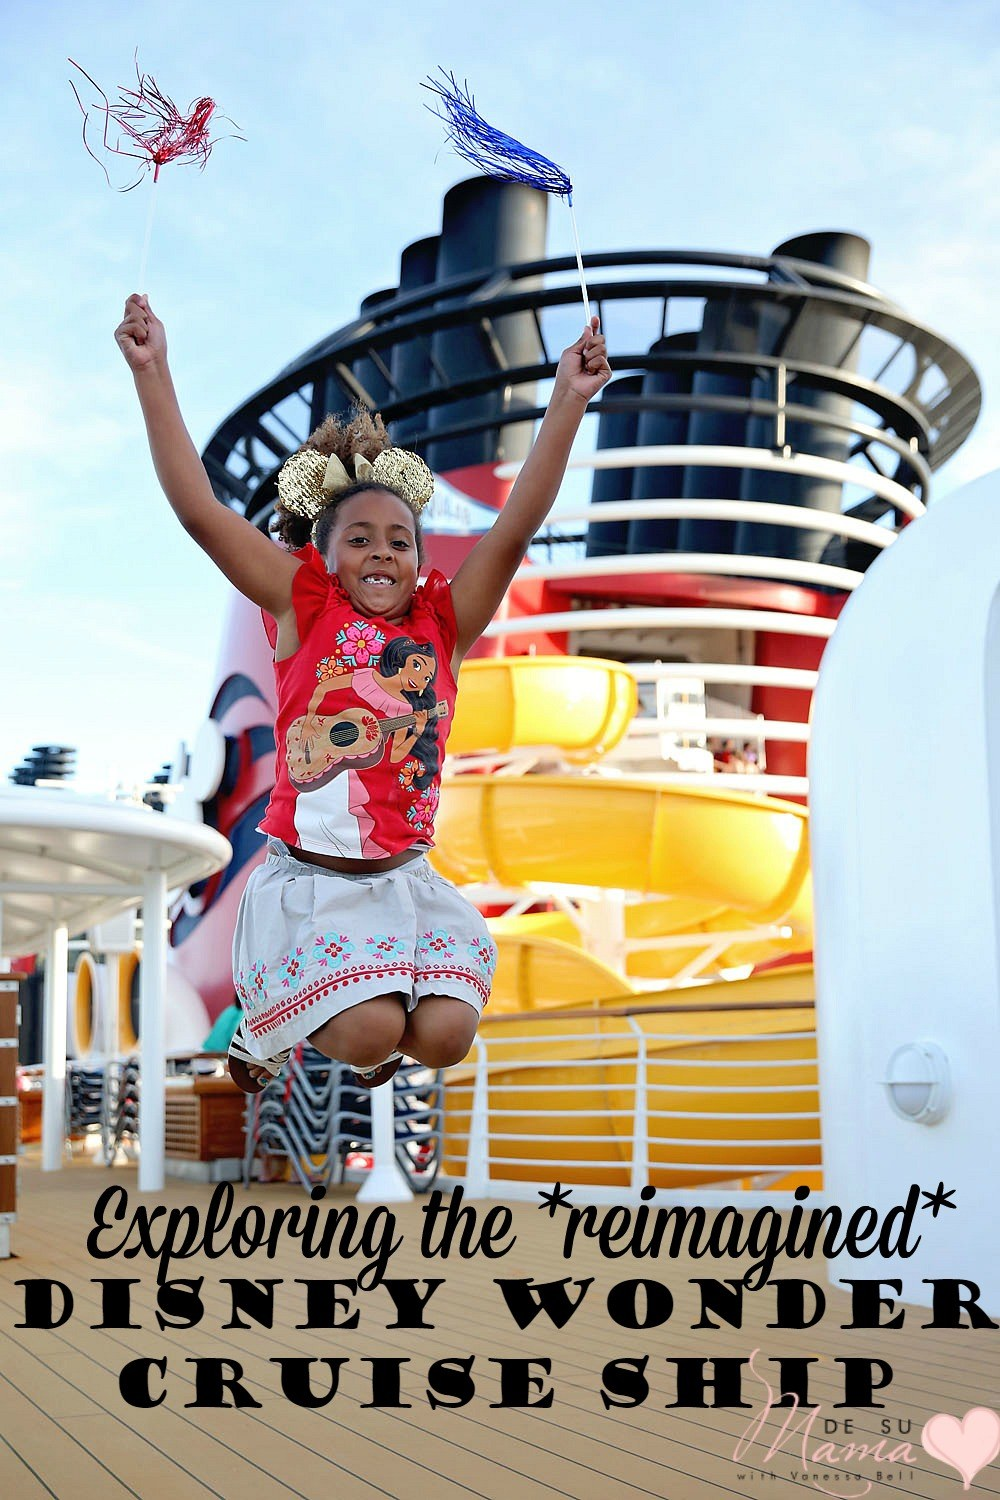 Is A Disney Cruise Is Worth The Cost? Travel With Kids